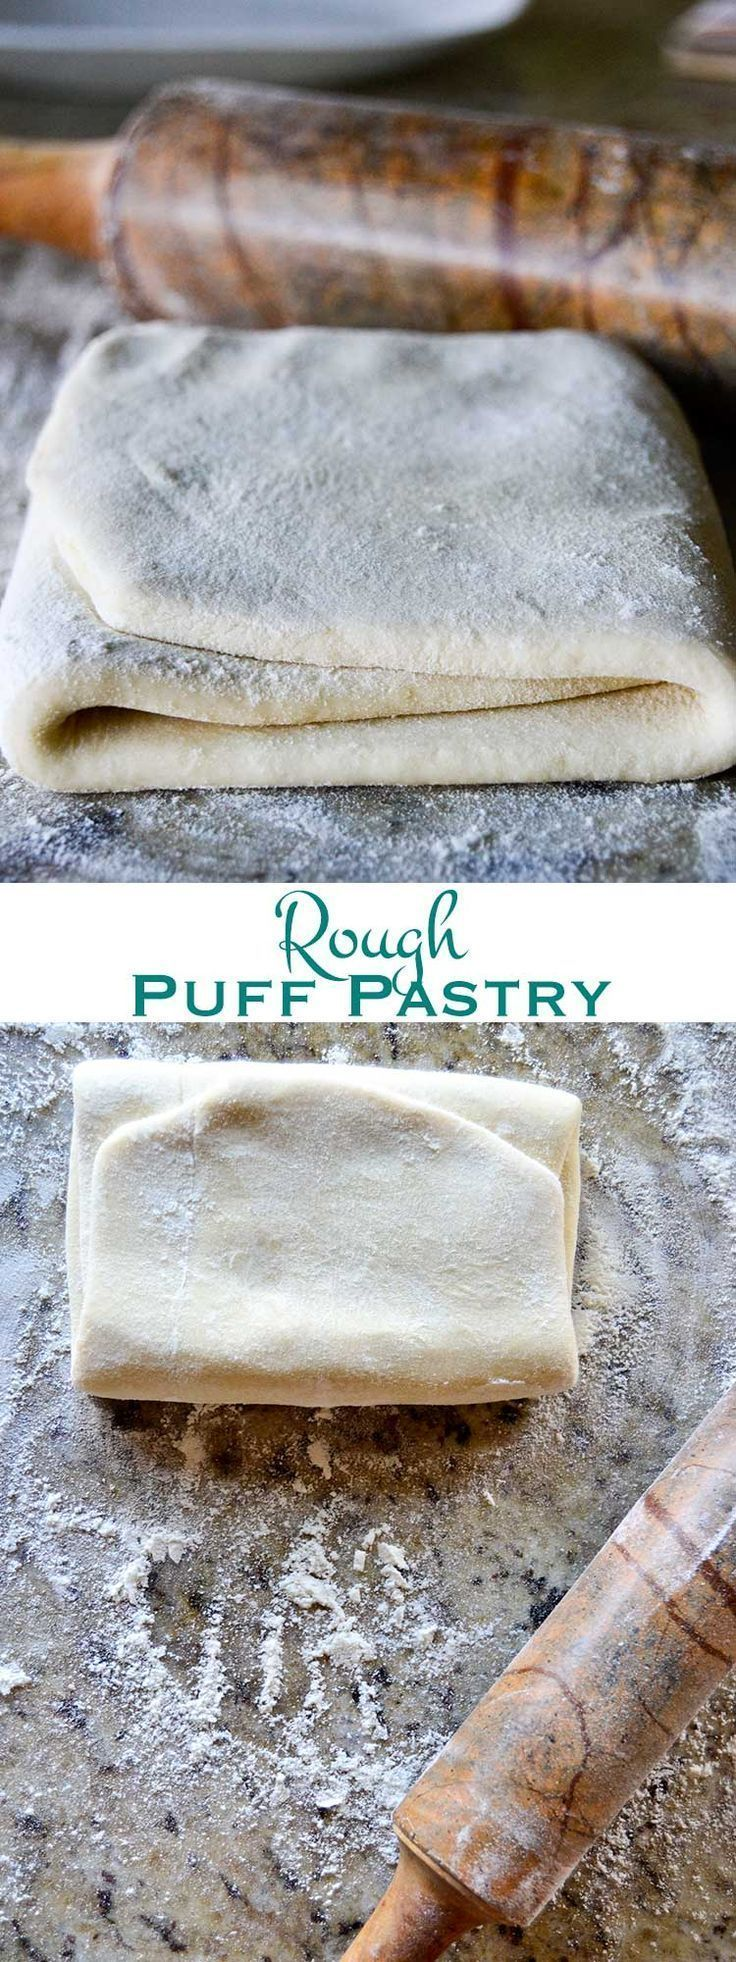 "Buttery, flaky, rough puff pastry: With a fraction of the time and effort of traditional puff pastry and a taste so good you'll forget it's not ""authentic."""